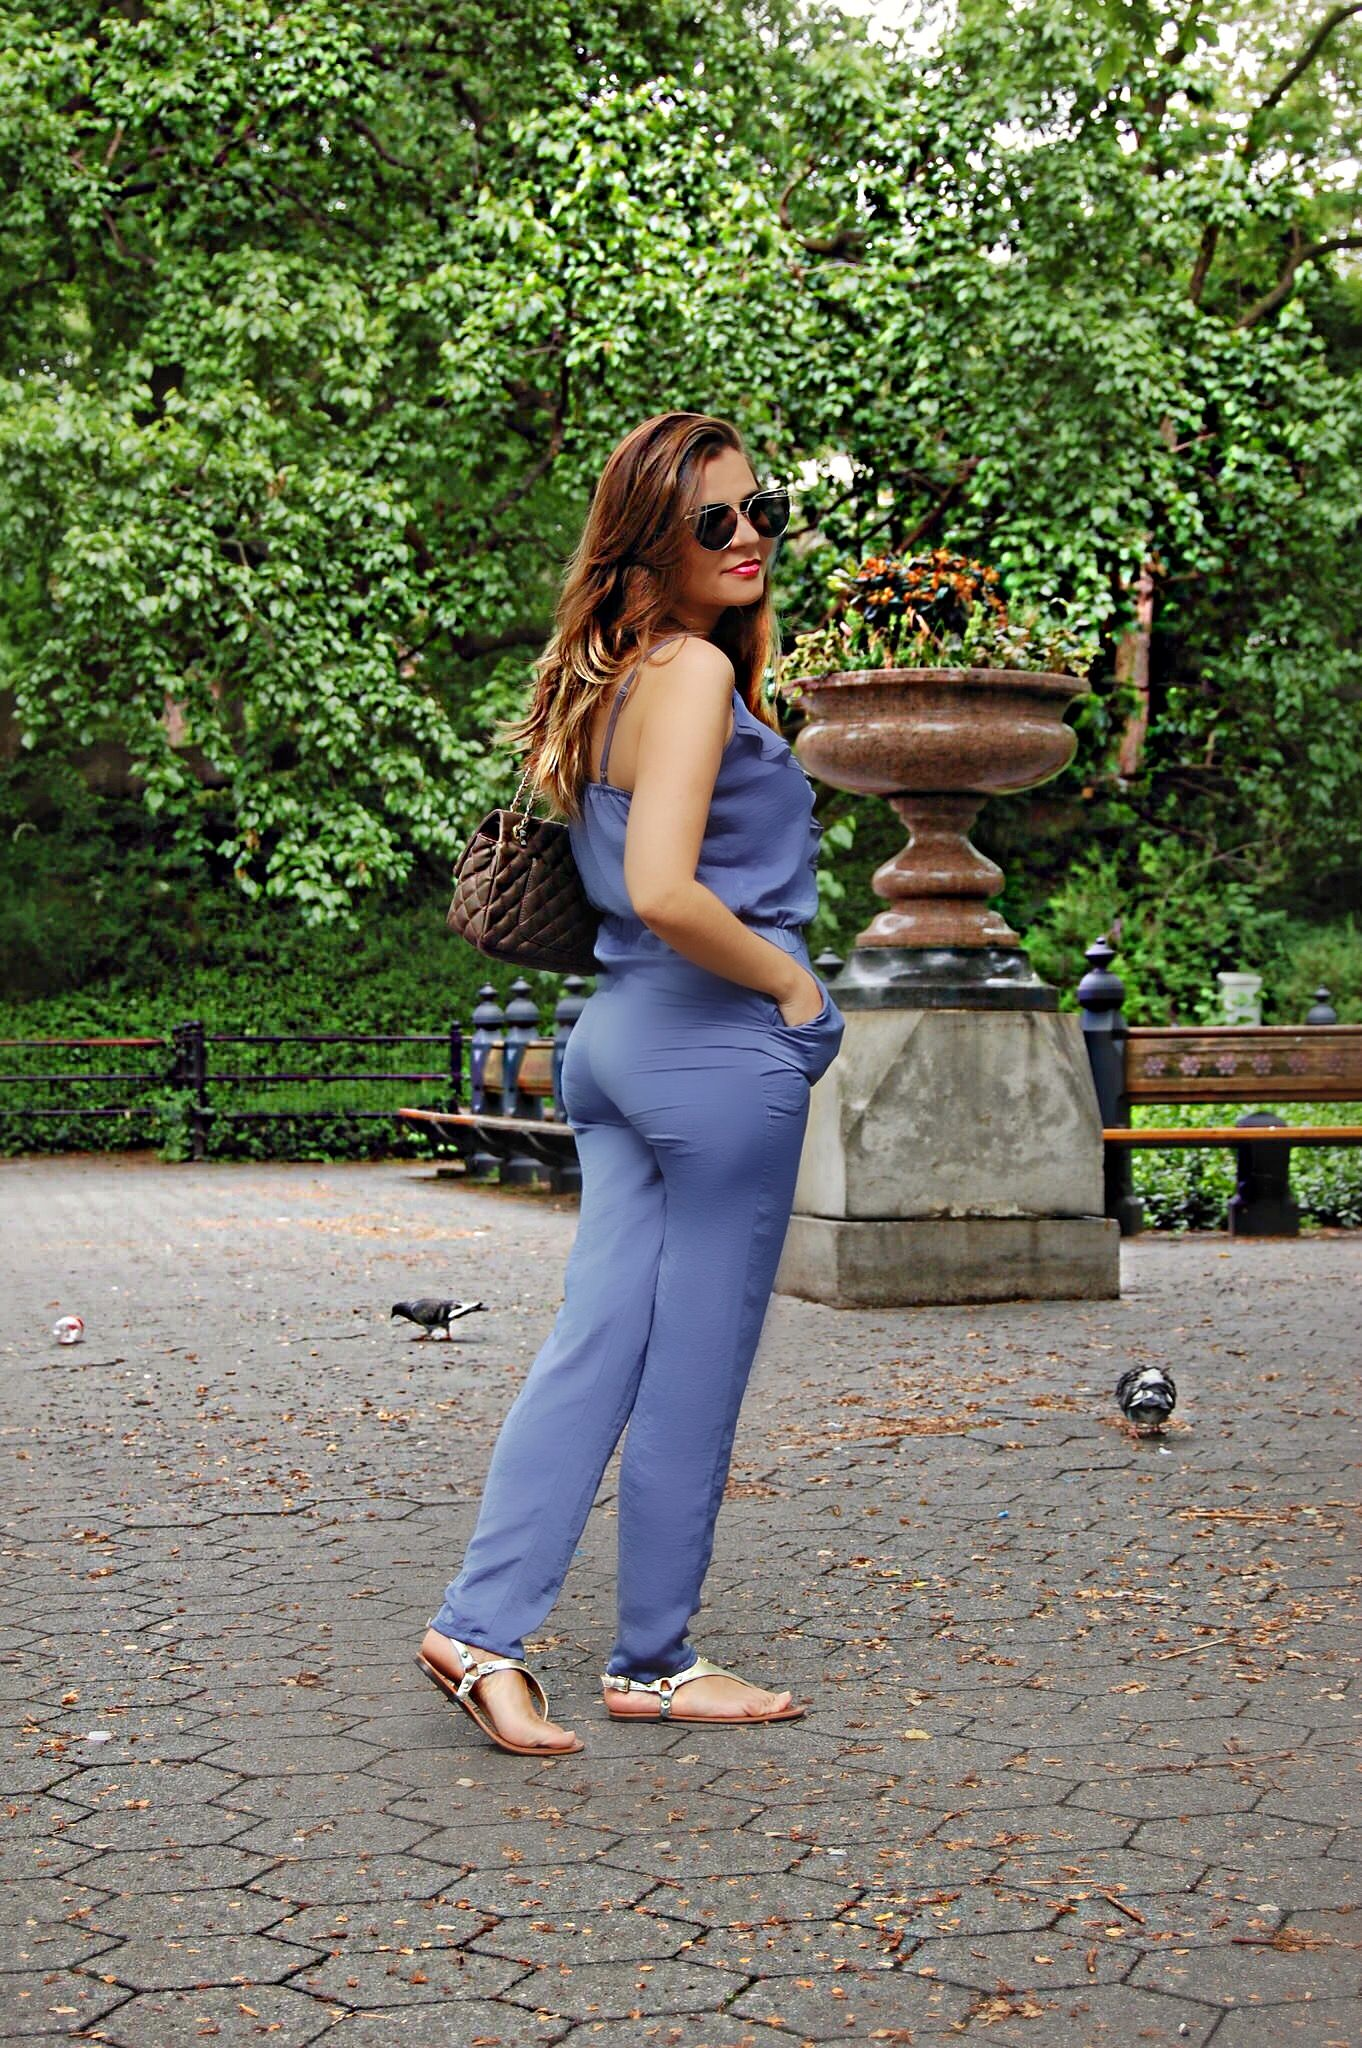 Central park fashion blogger photos,  blue jumpsuit,  alley girl new york fashion blogger